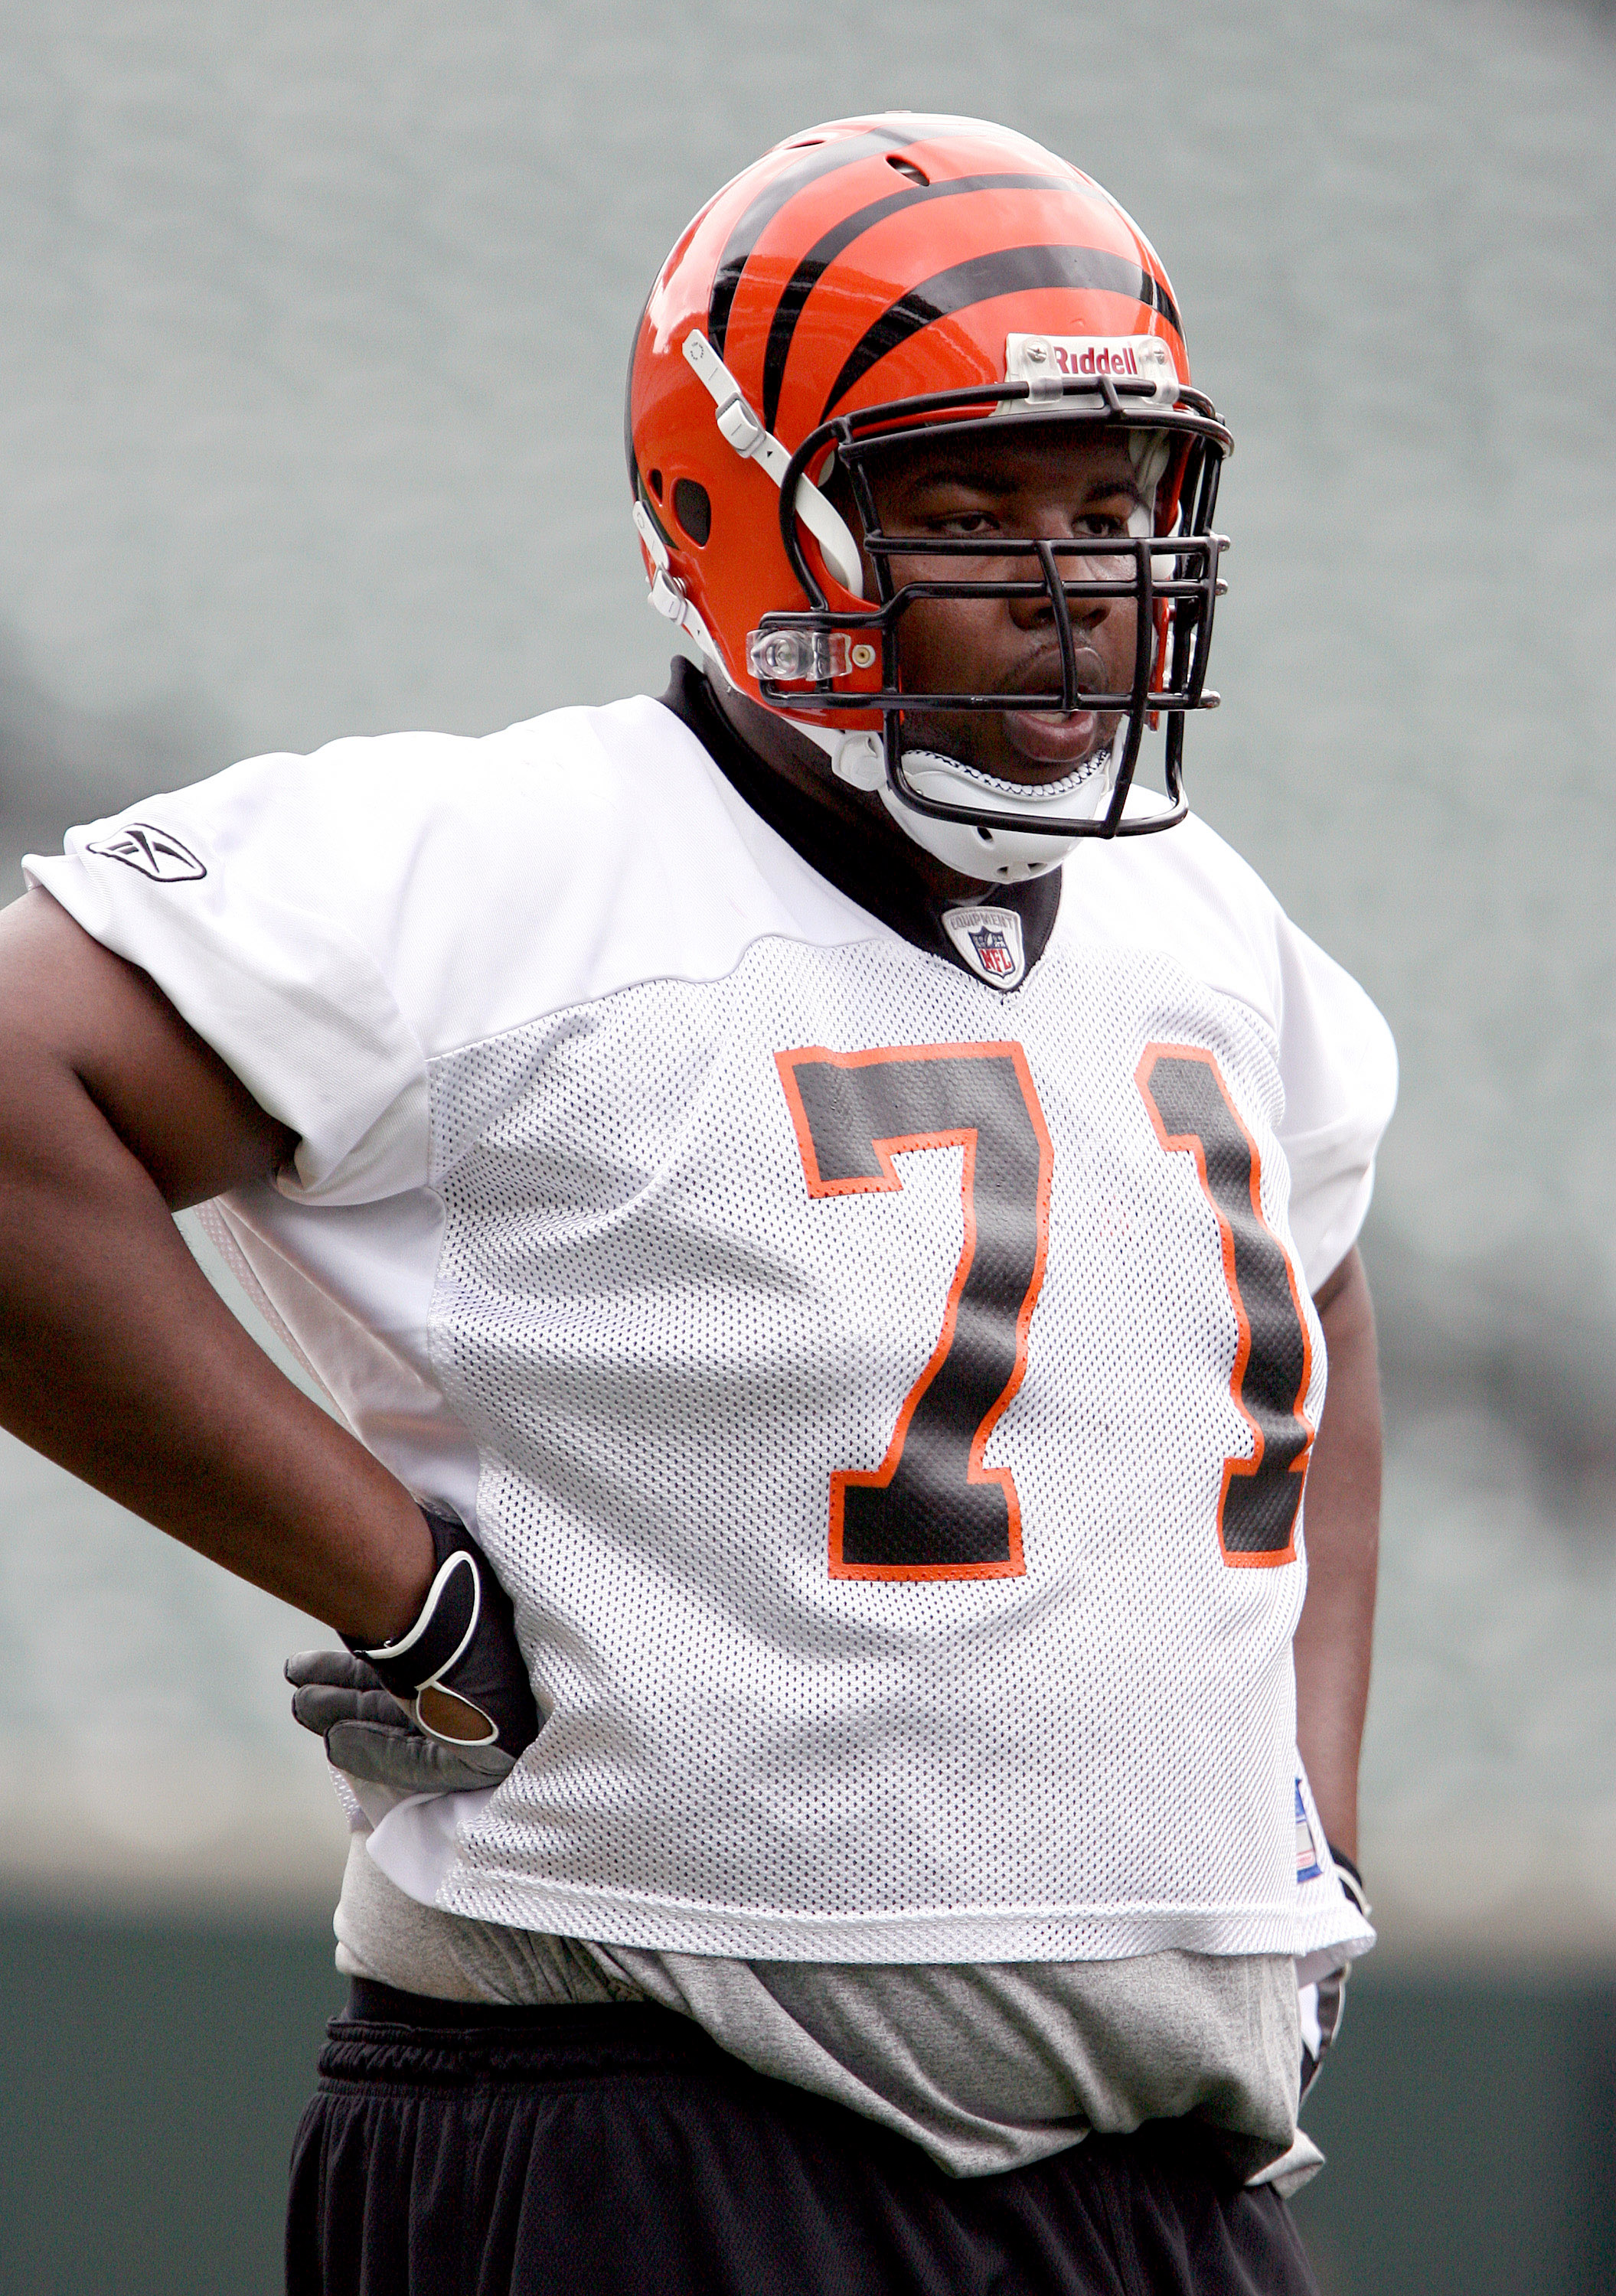 CINCINNATI, OH - MAY 1:  First round draft pick Andre Smith #71 of the Cincinnati Bengals waits his turn for a drill during rookie minicamp at Paul Brown Stadium on May 1, 2009 in Cincinnati, Ohio.  (Photo by Mark Lyons/Getty Images)